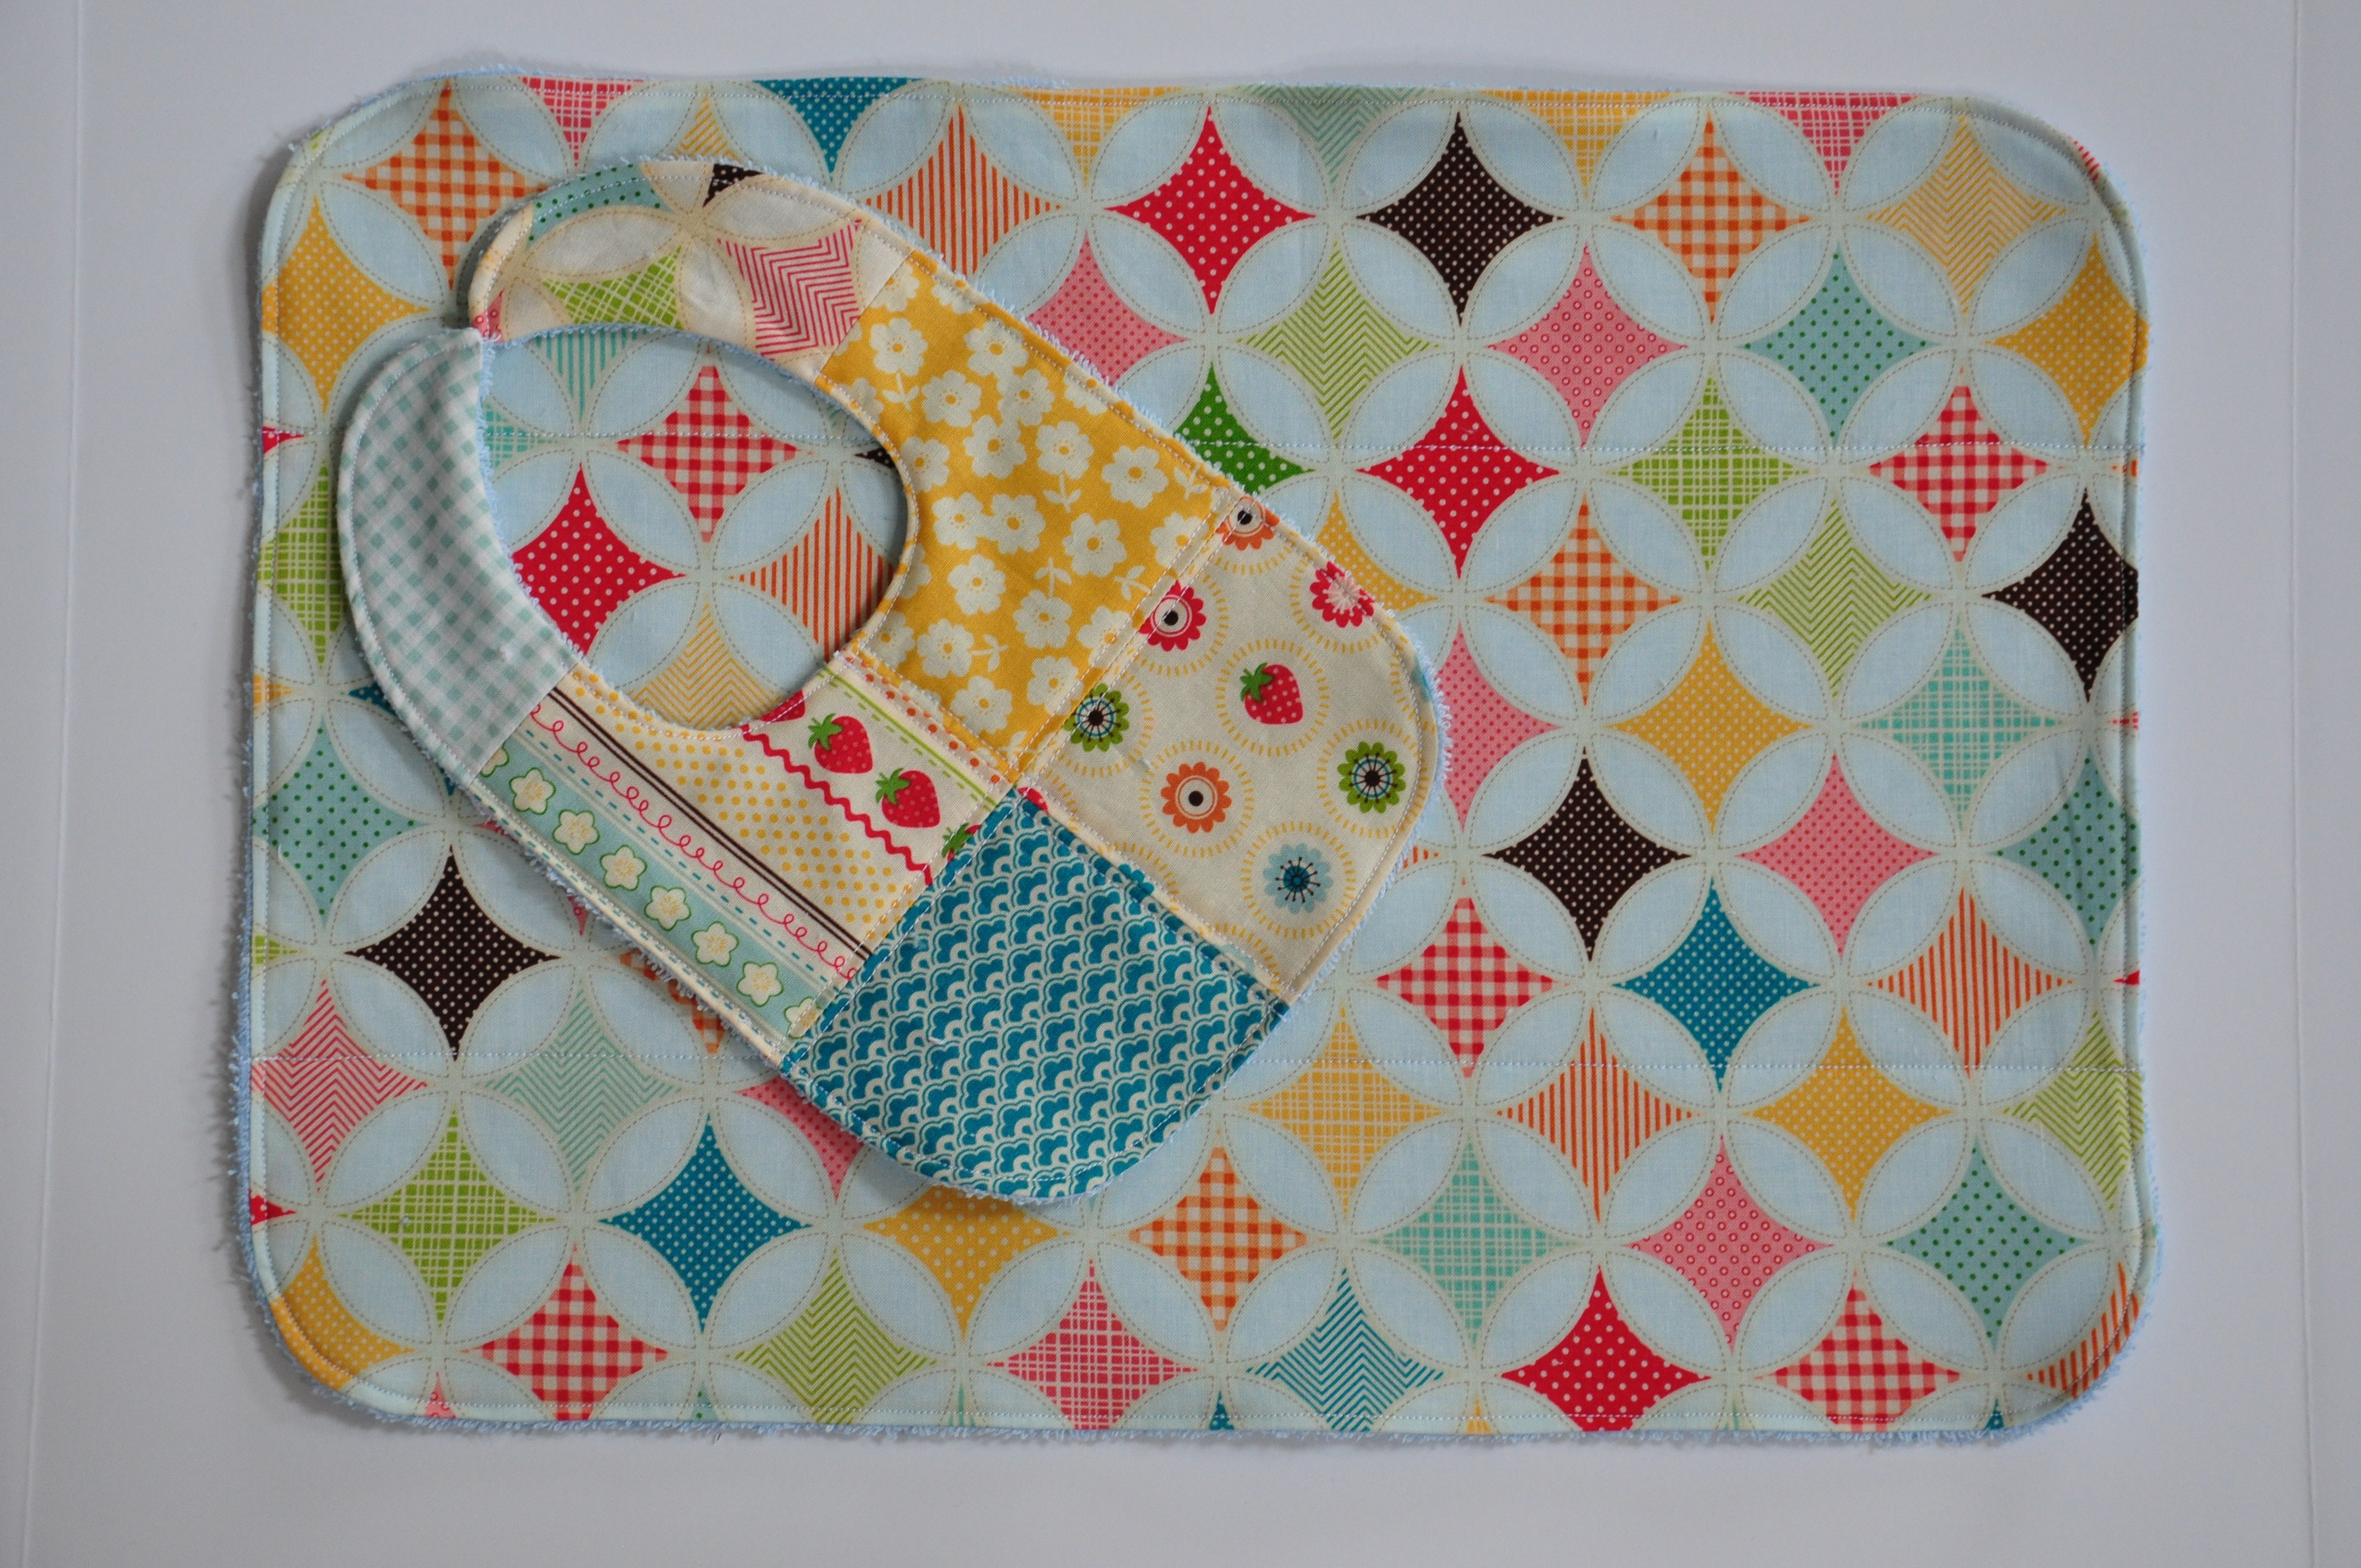 Clover & Violet — Patchwork Bibs and Burp Cloths with Terry Cuddle : quilted baby bibs - Adamdwight.com